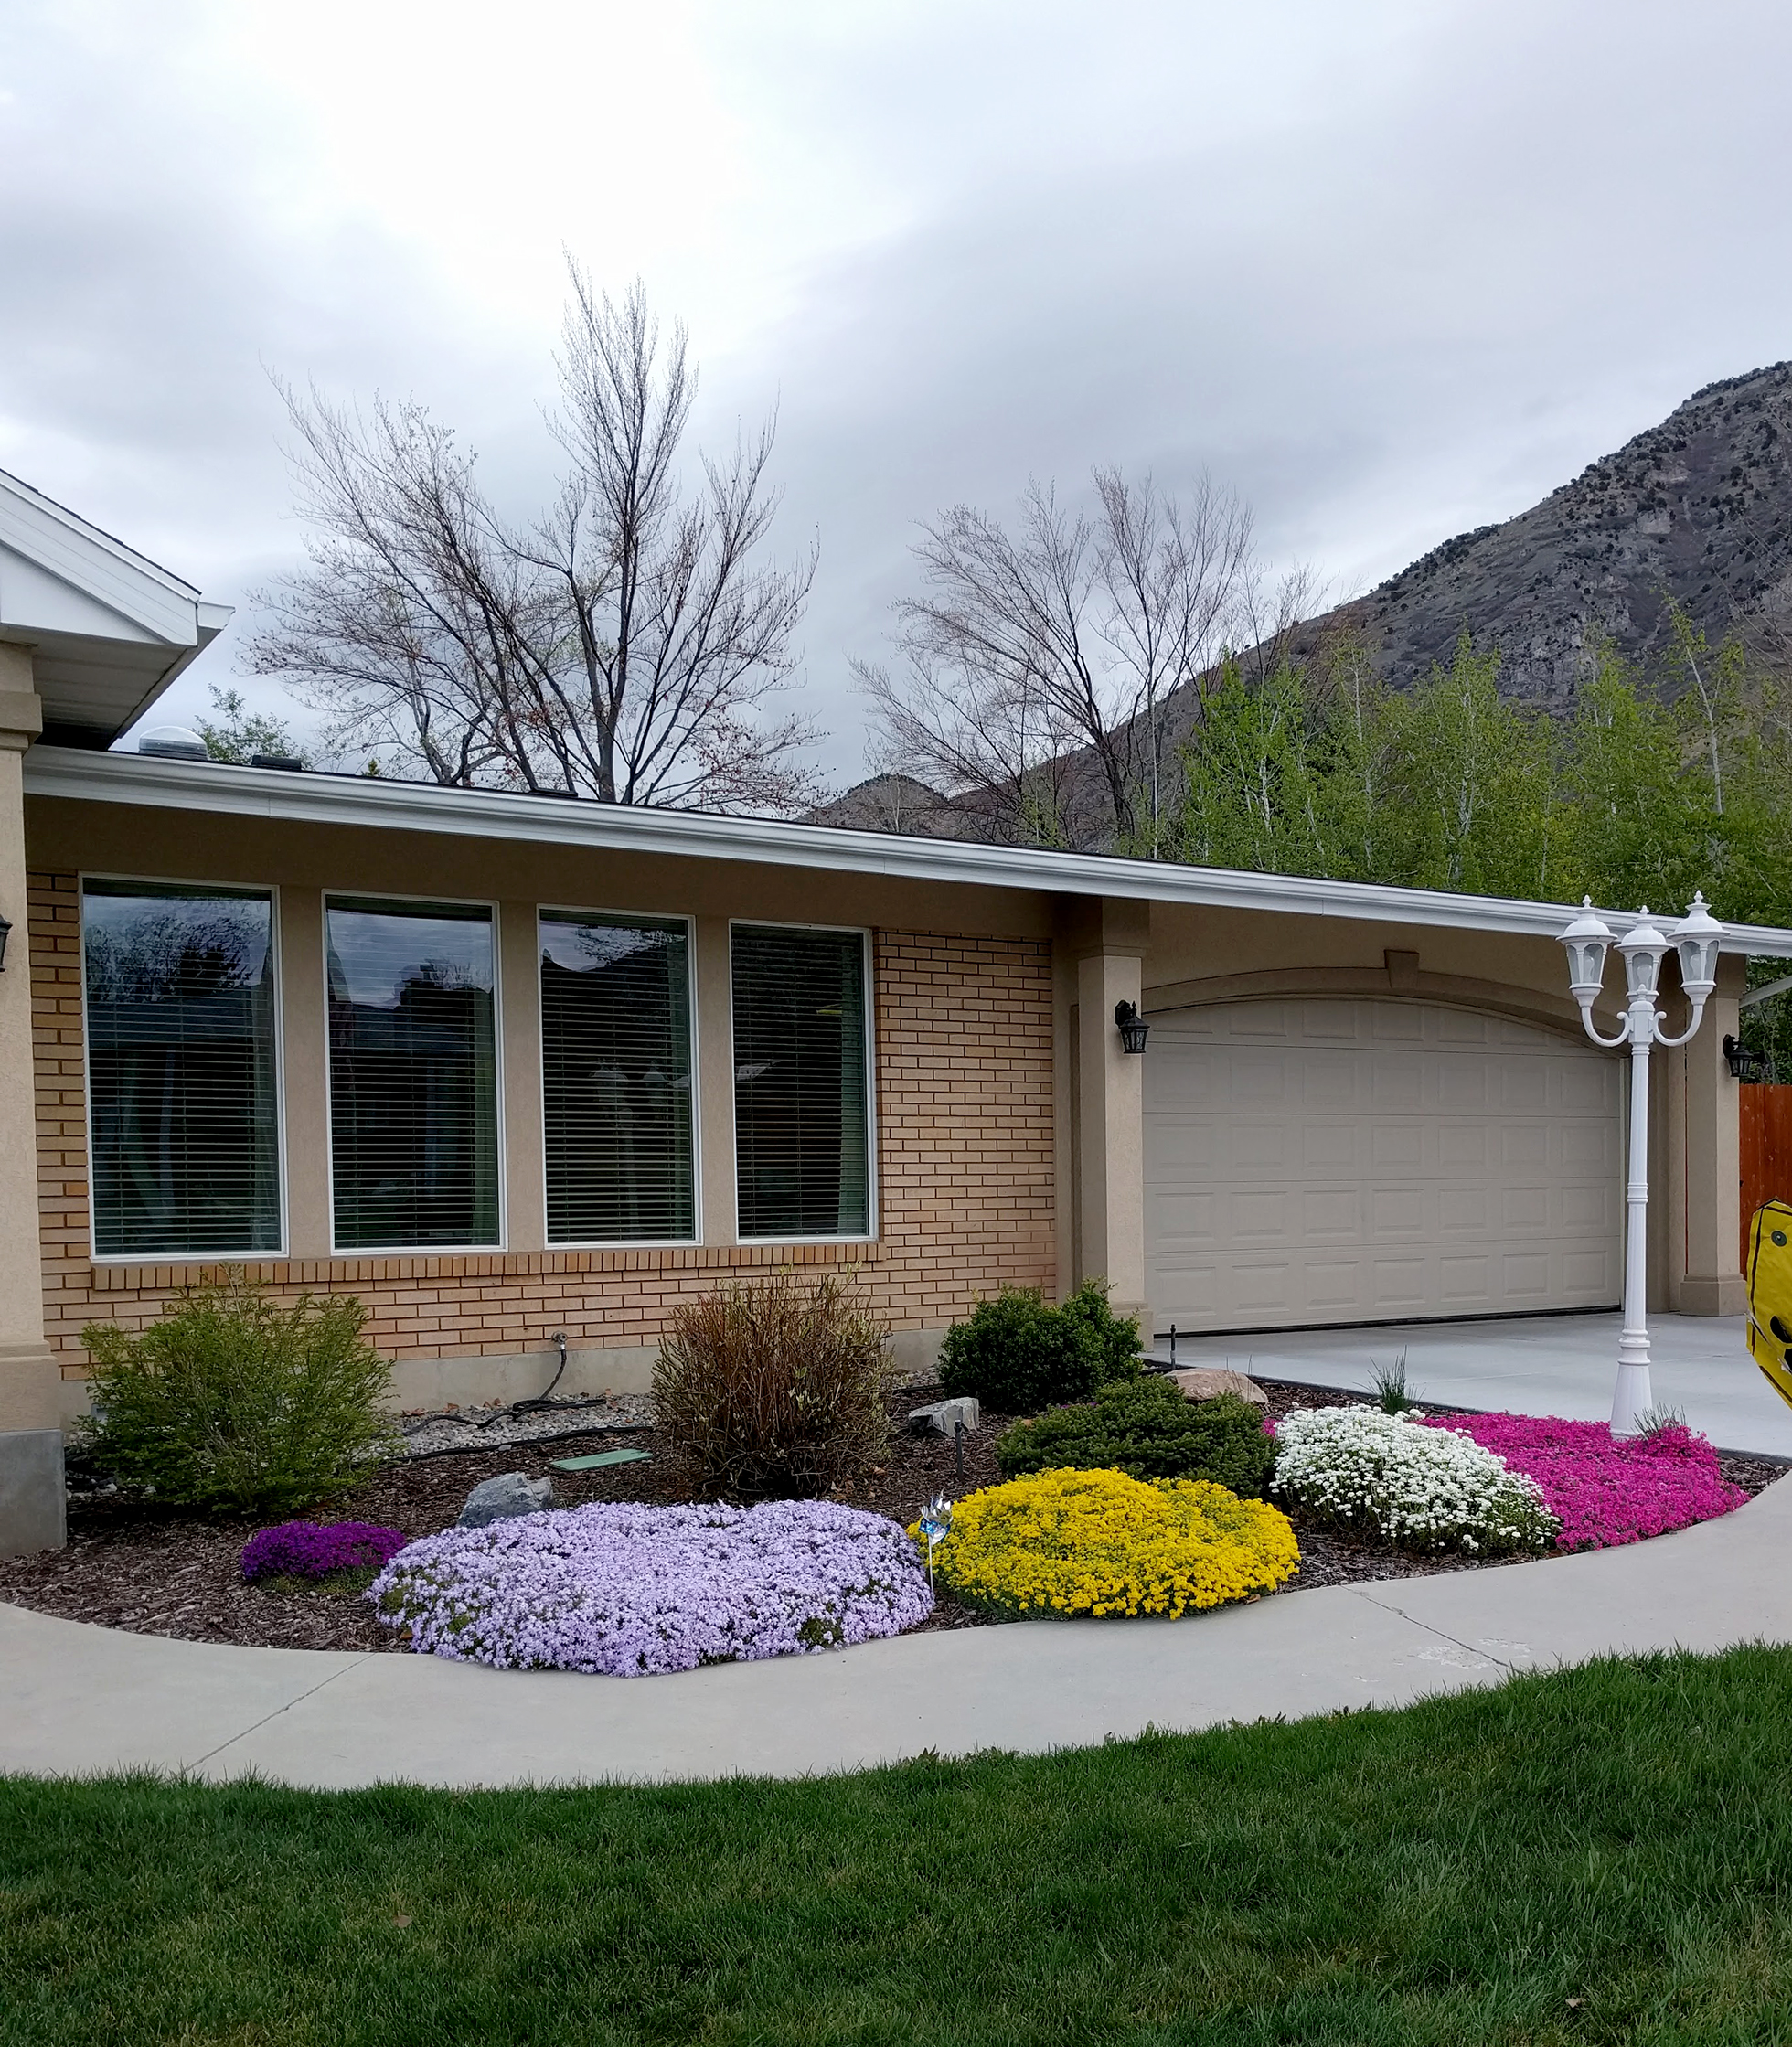 Ranch-style home with colorful flower beds in front yard